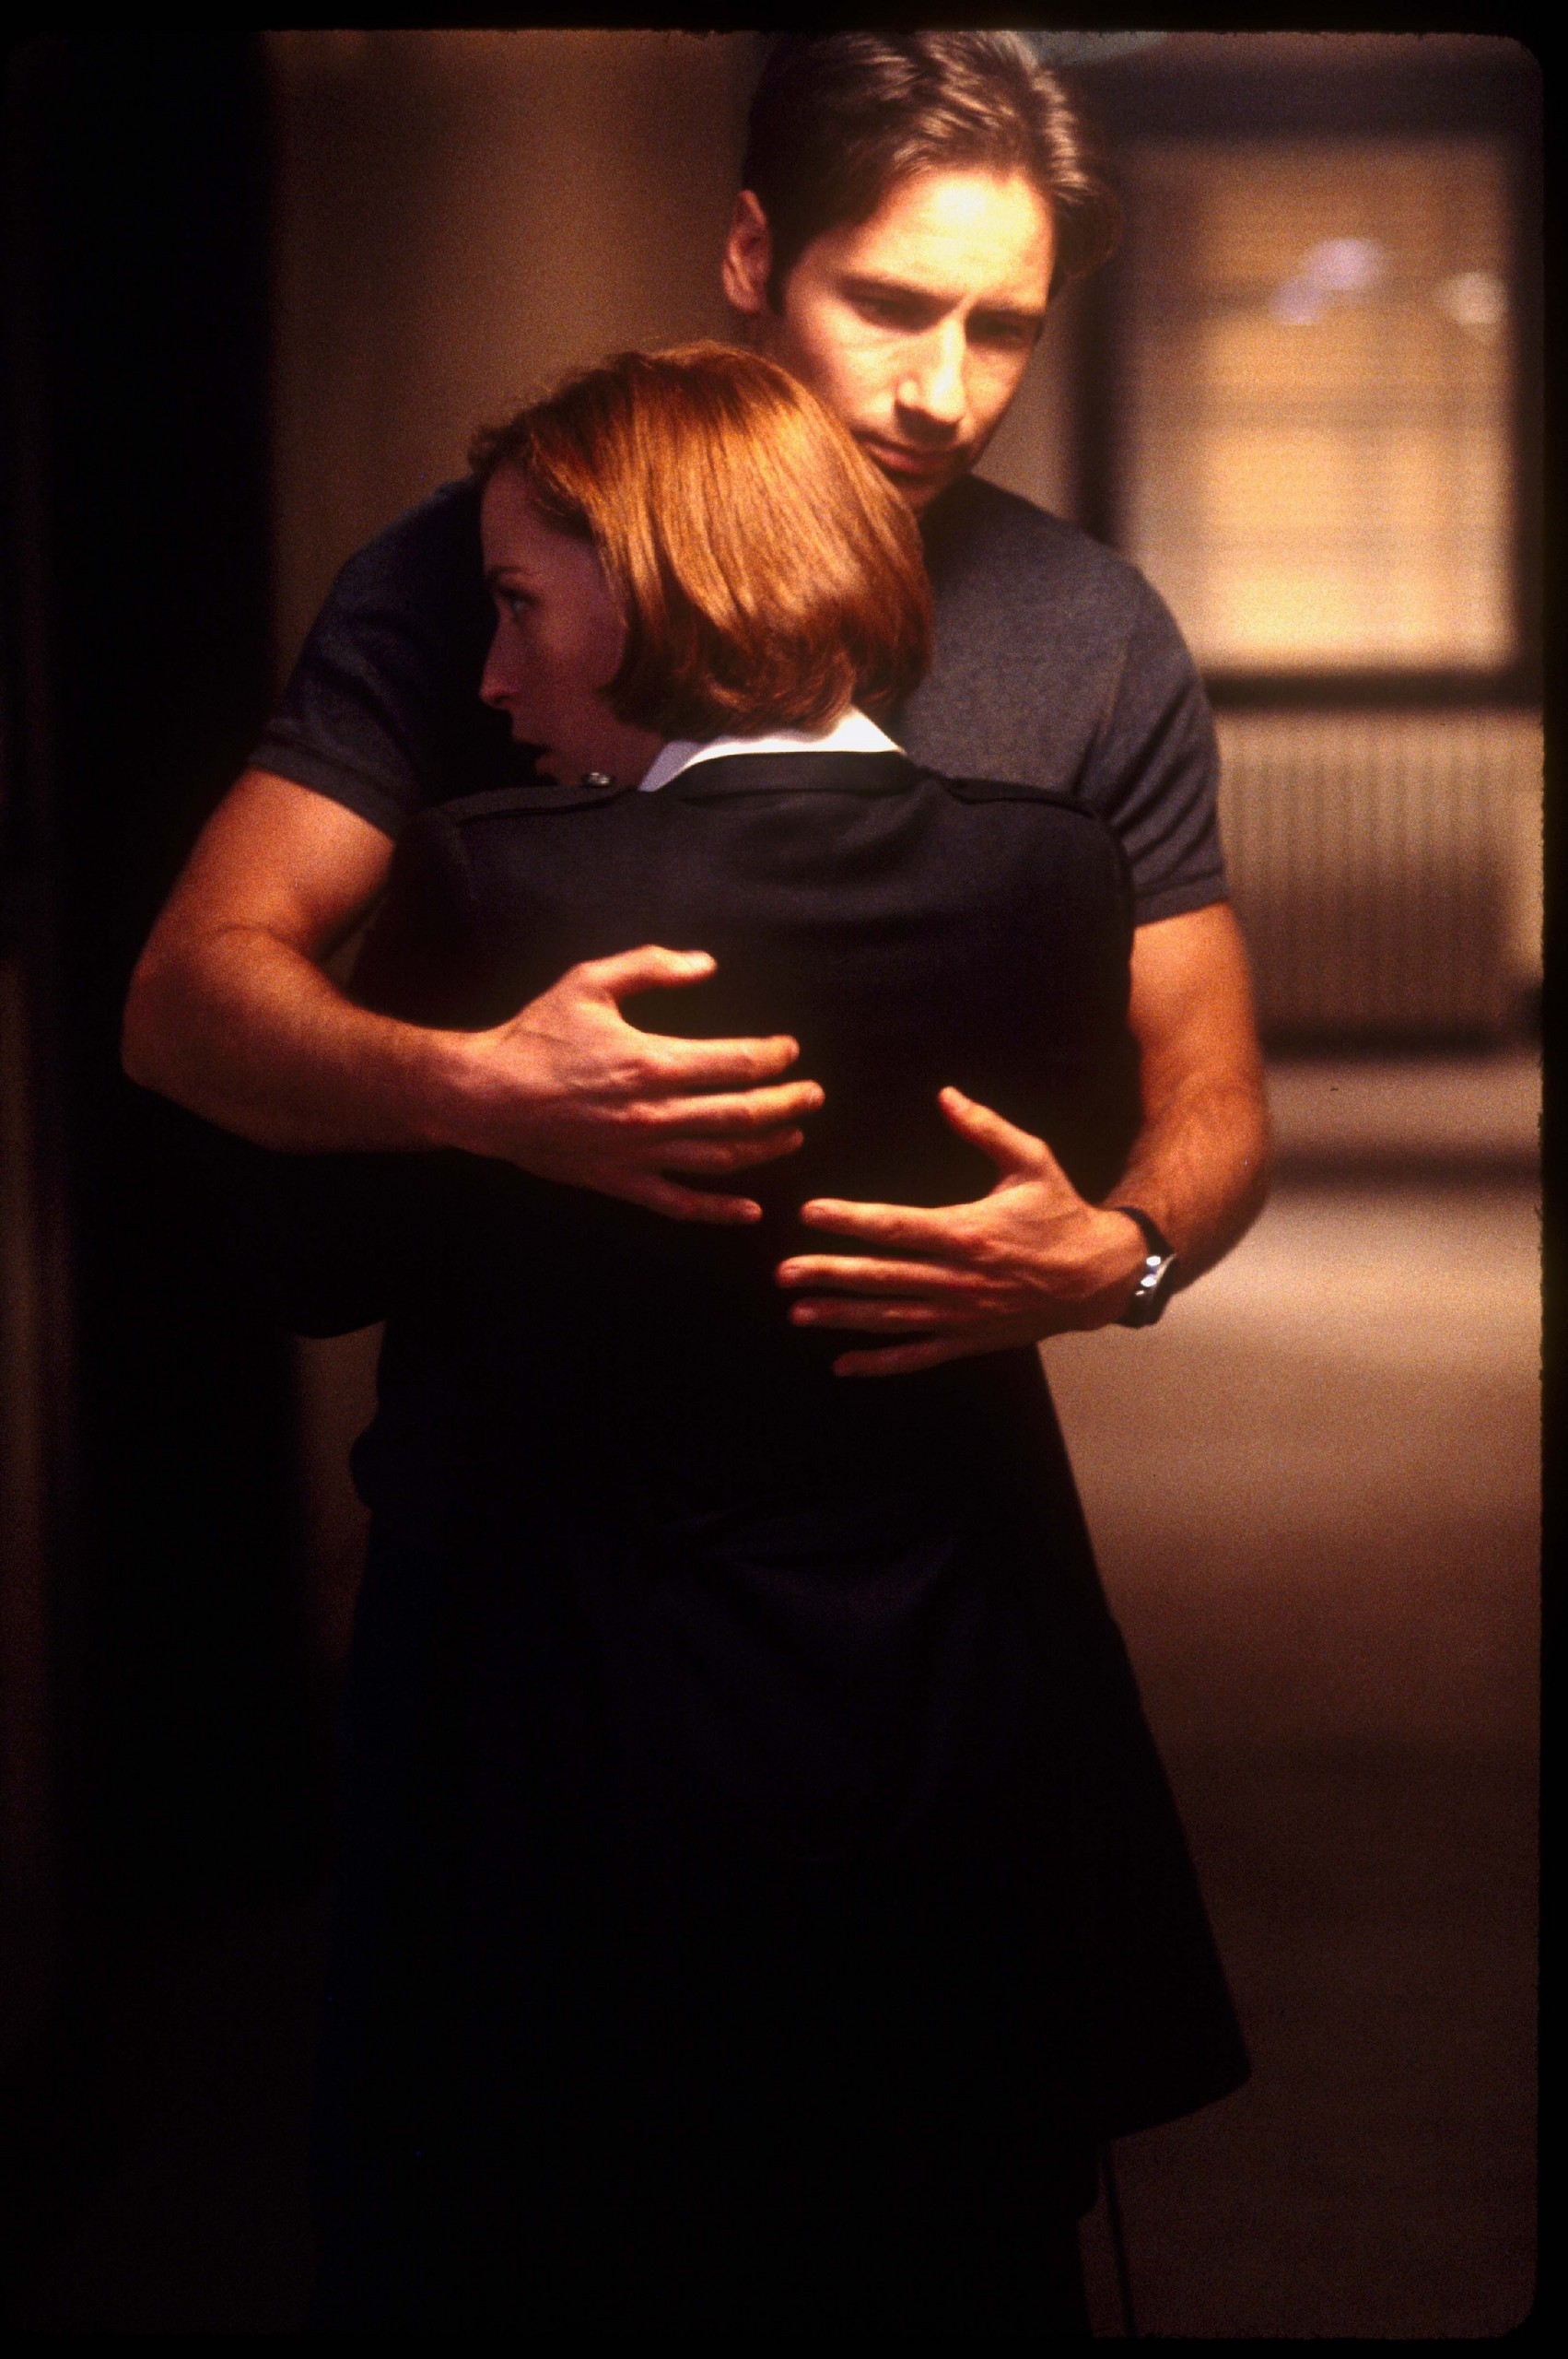 mulder and scully relationship stories breakup